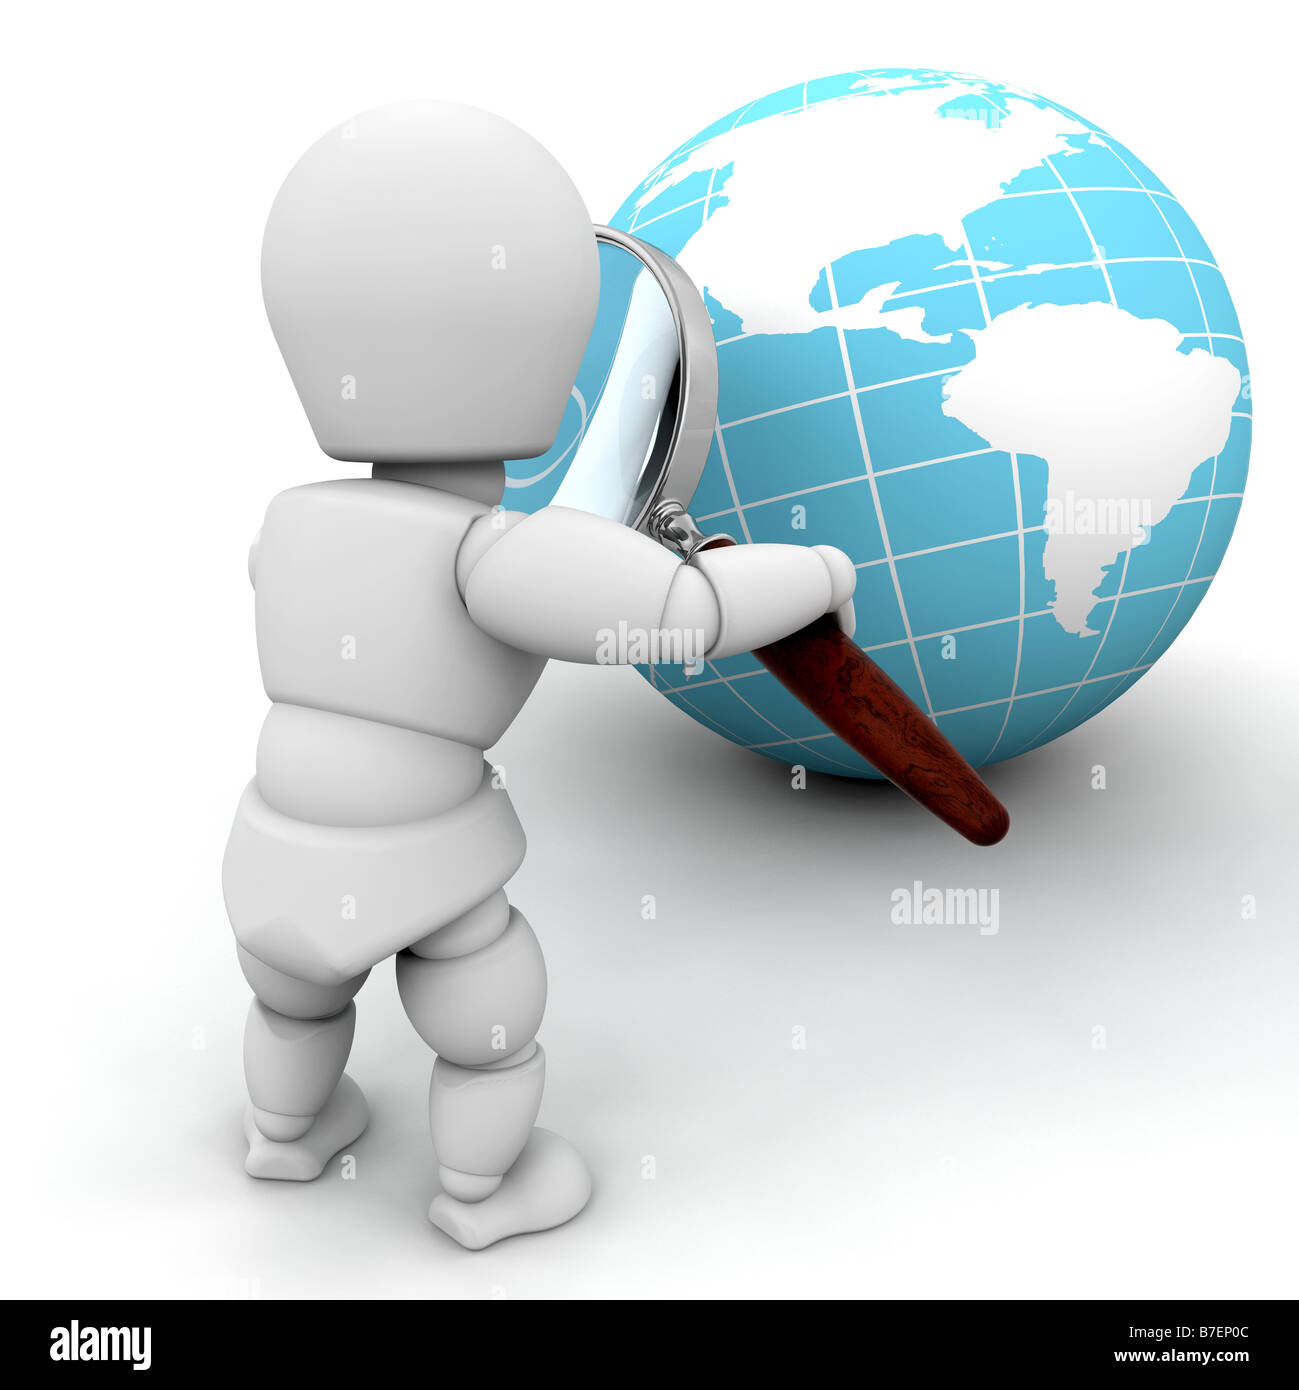 3D render of someone looking at a globe through a magnifying glass - Stock Image